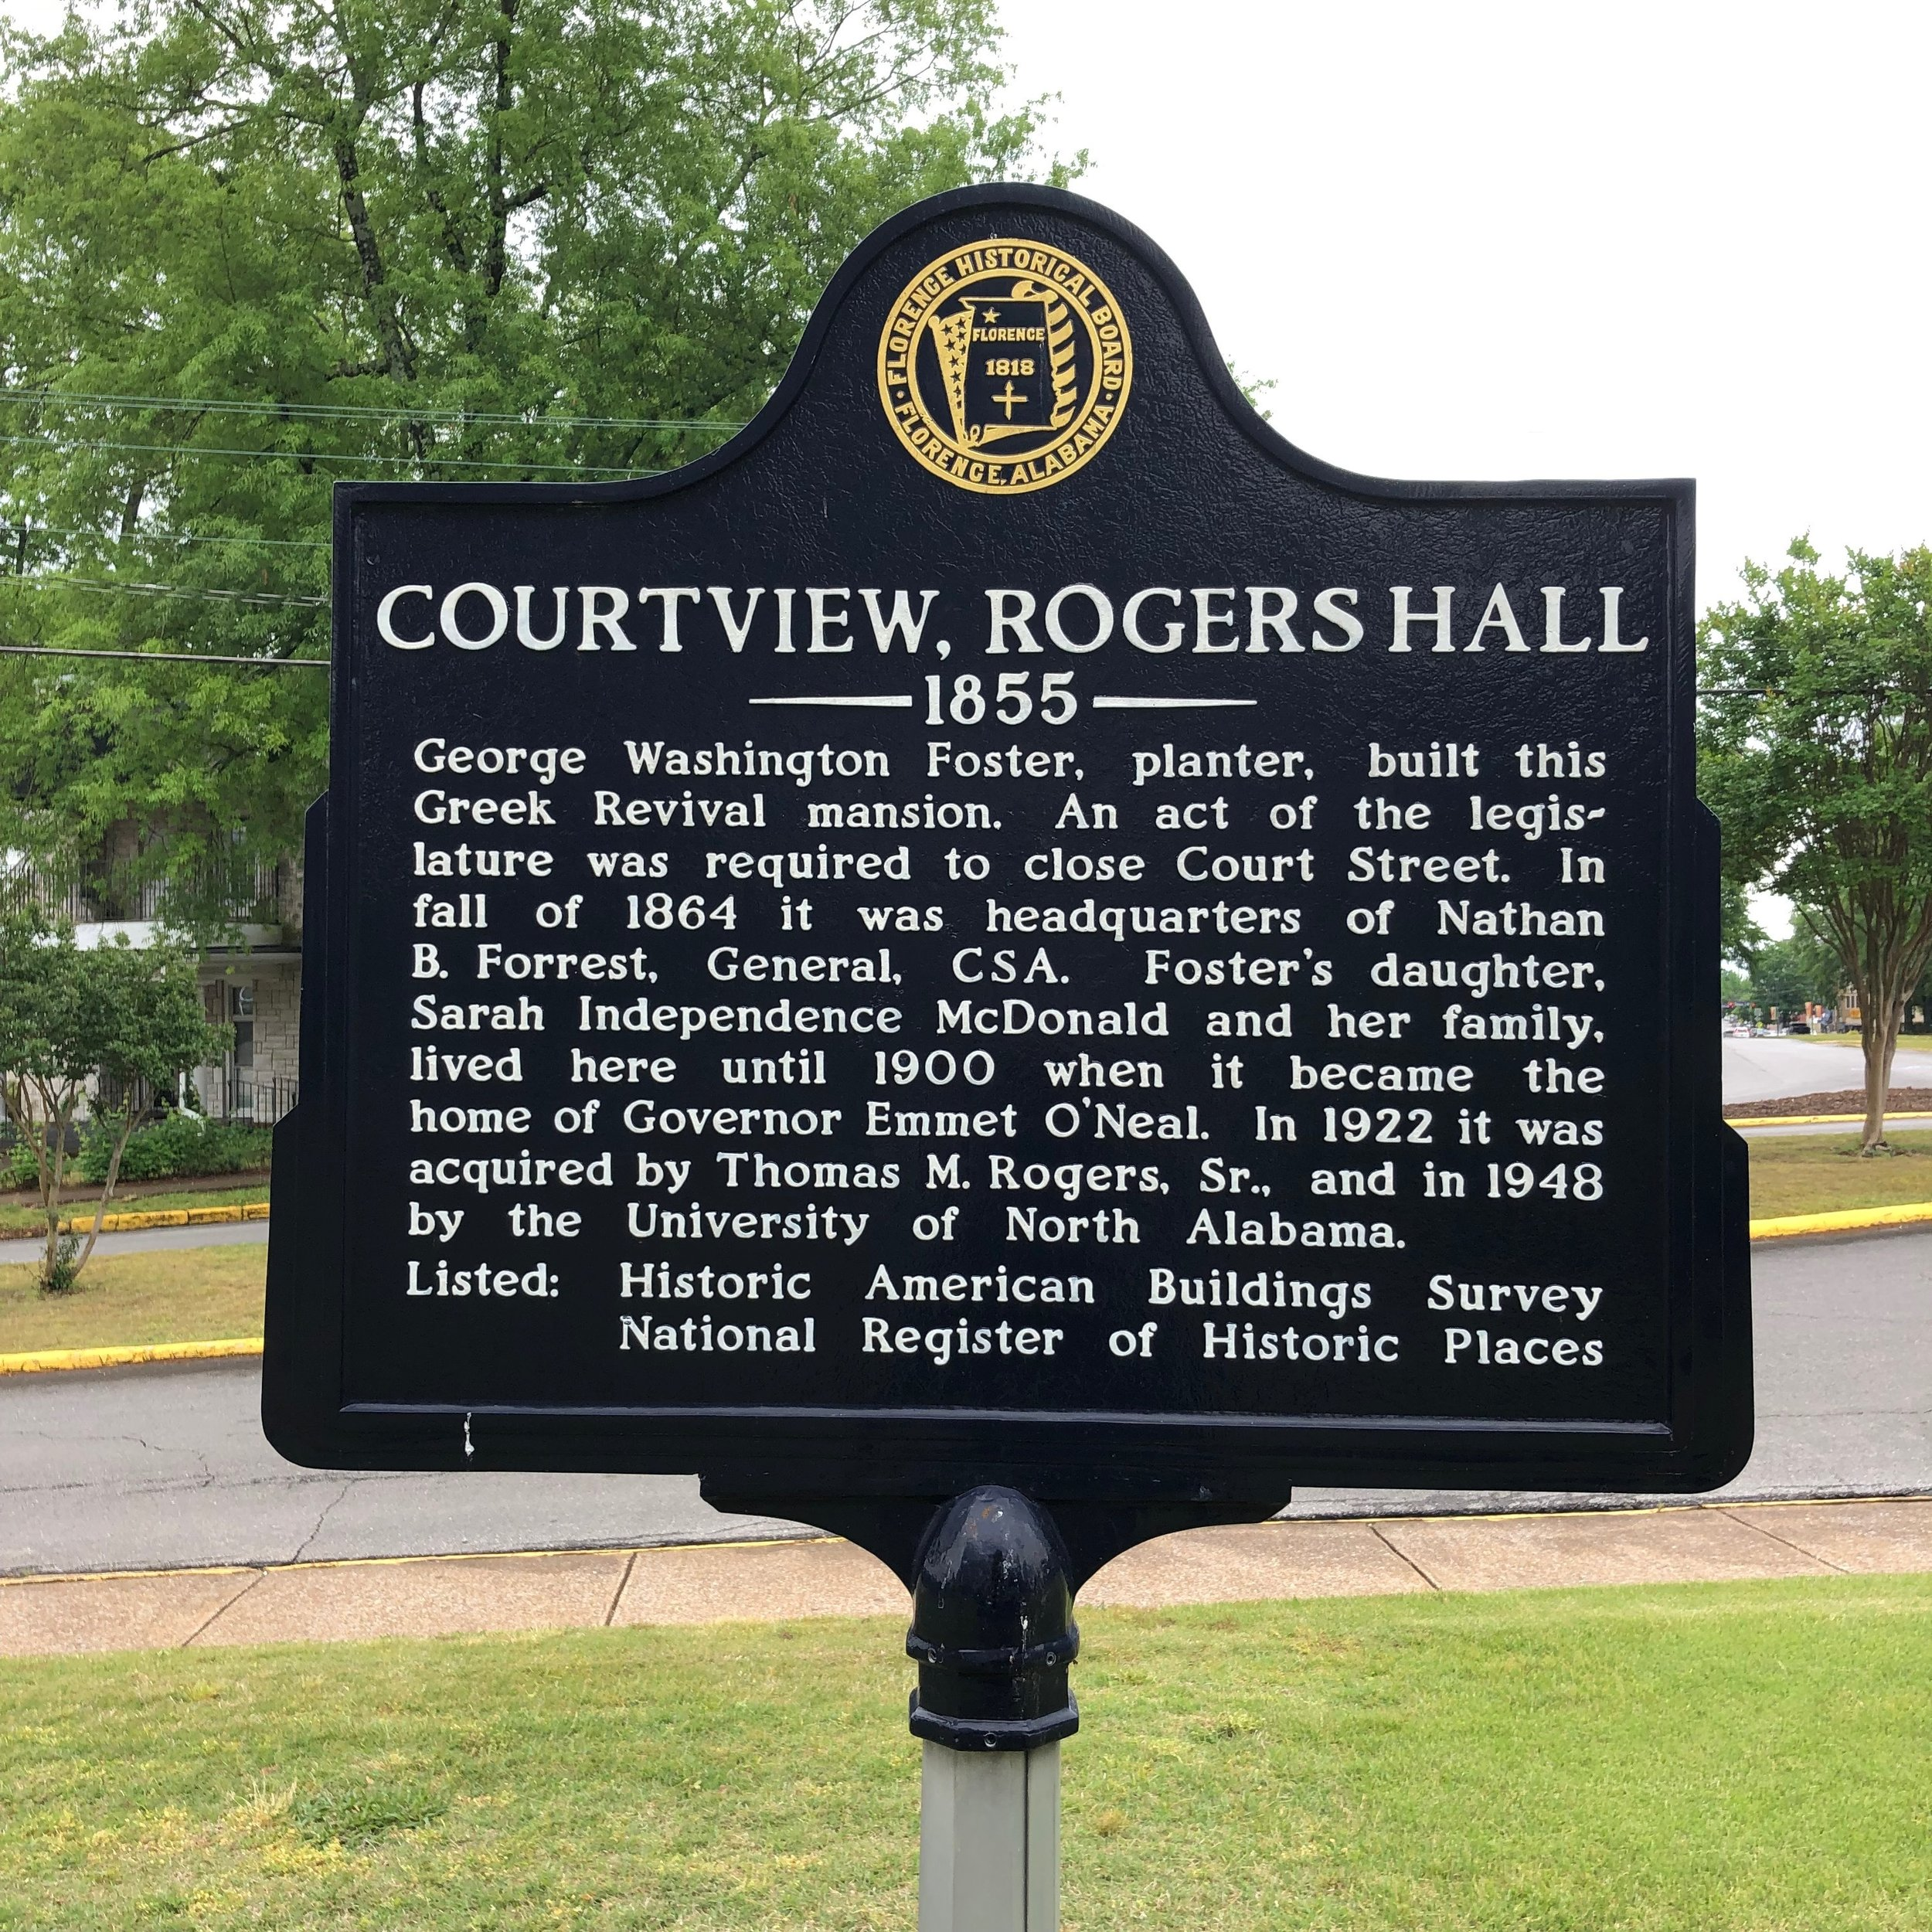 Courtview, Rogers Hall Marker, Florence, AL.JPG